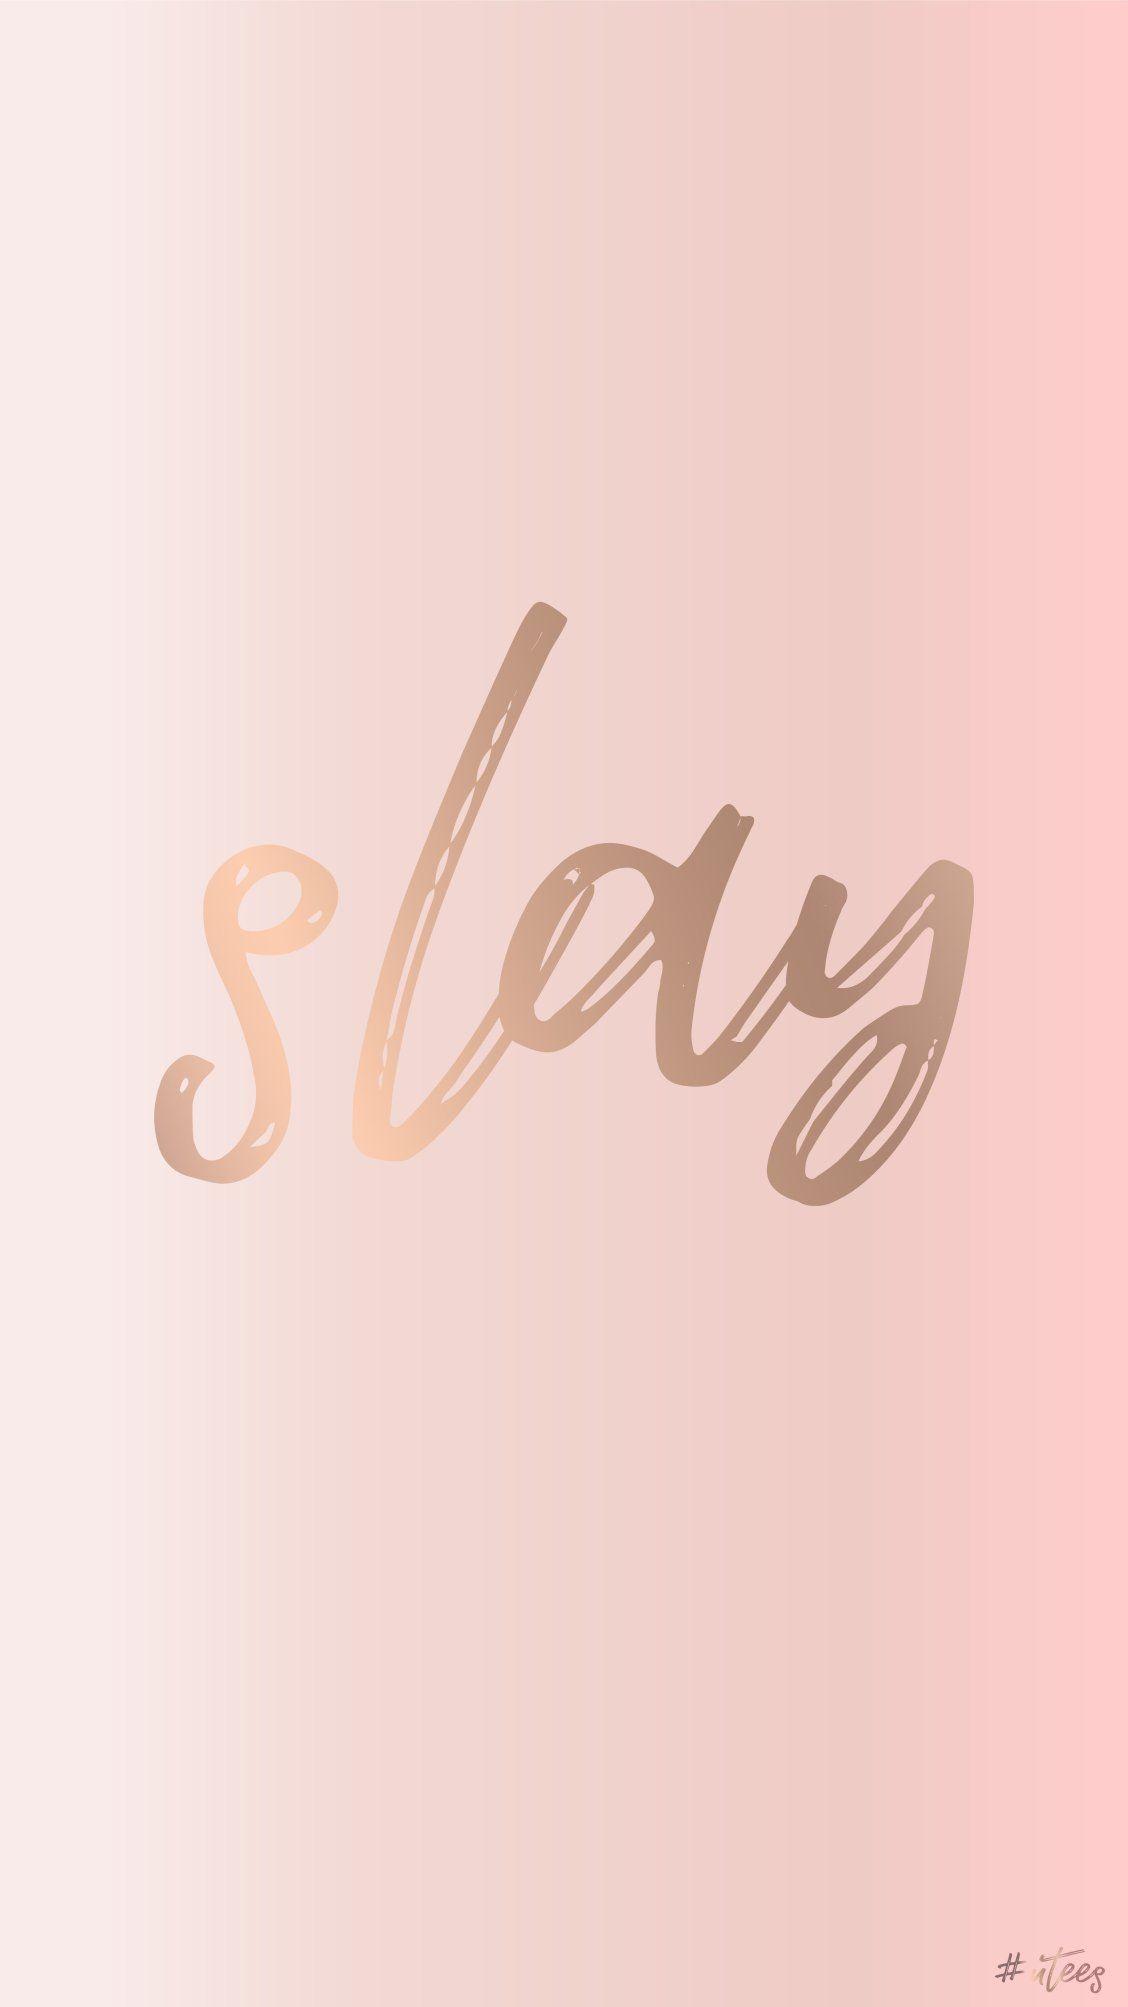 Classy Blush Pink Iphone Wallpaper Hd Wallpaper In 2020 Rose Gold Wallpaper Iphone Pink Wallpaper Iphone Rose Gold Wallpaper